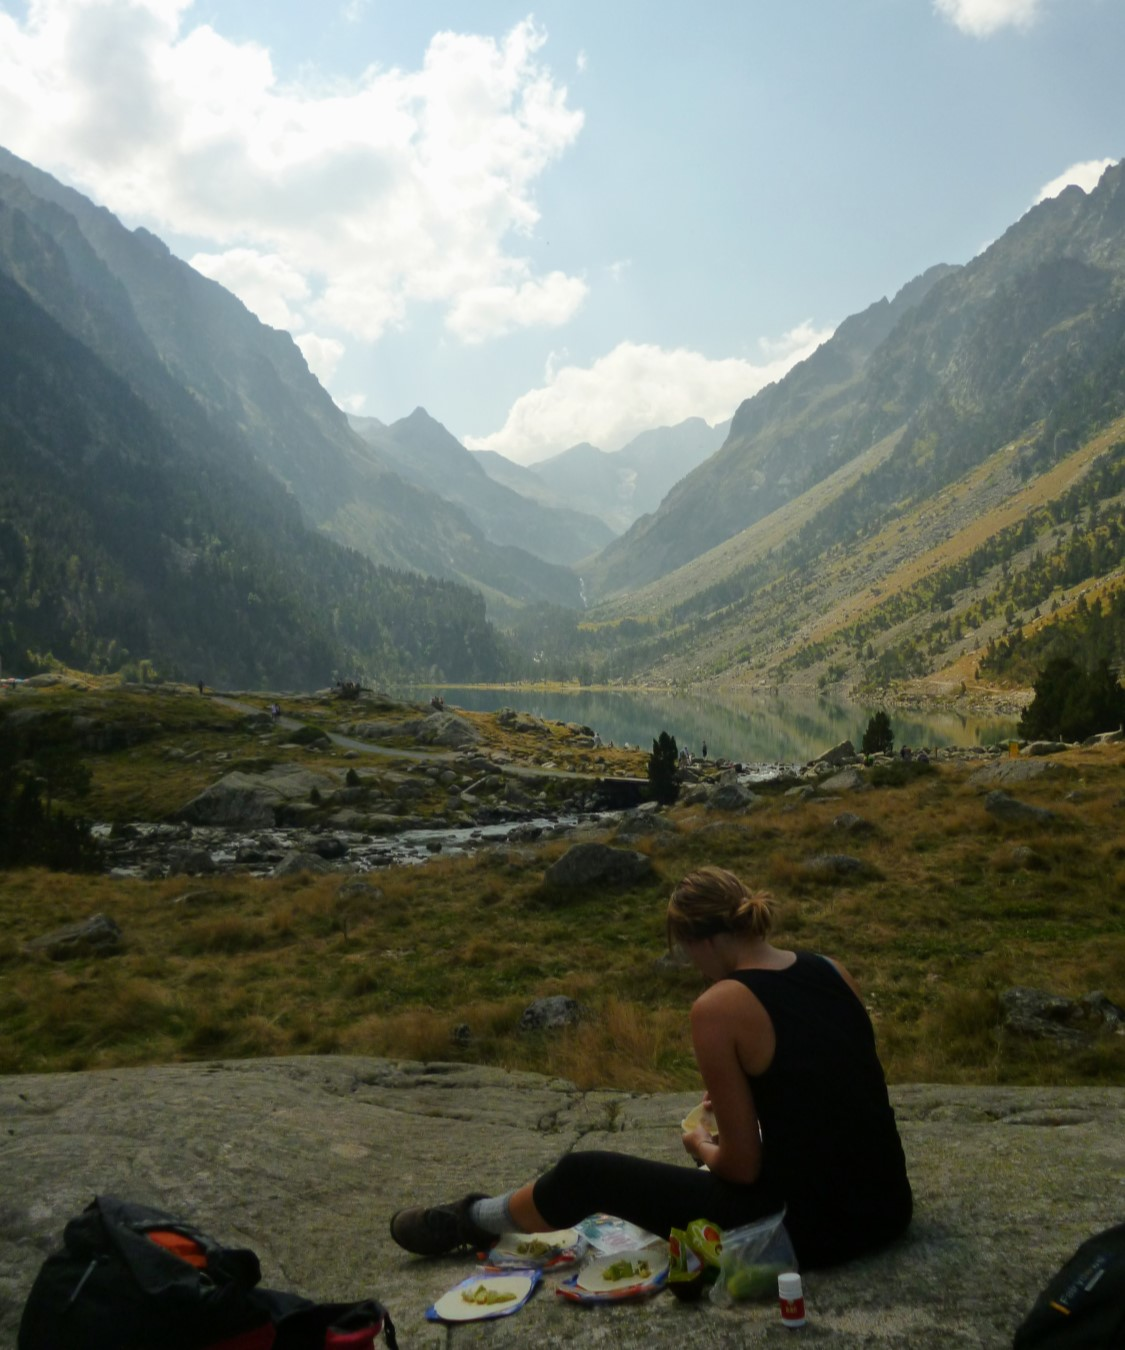 Stopping for lunch in the valley just south of Pont d'Espagne.